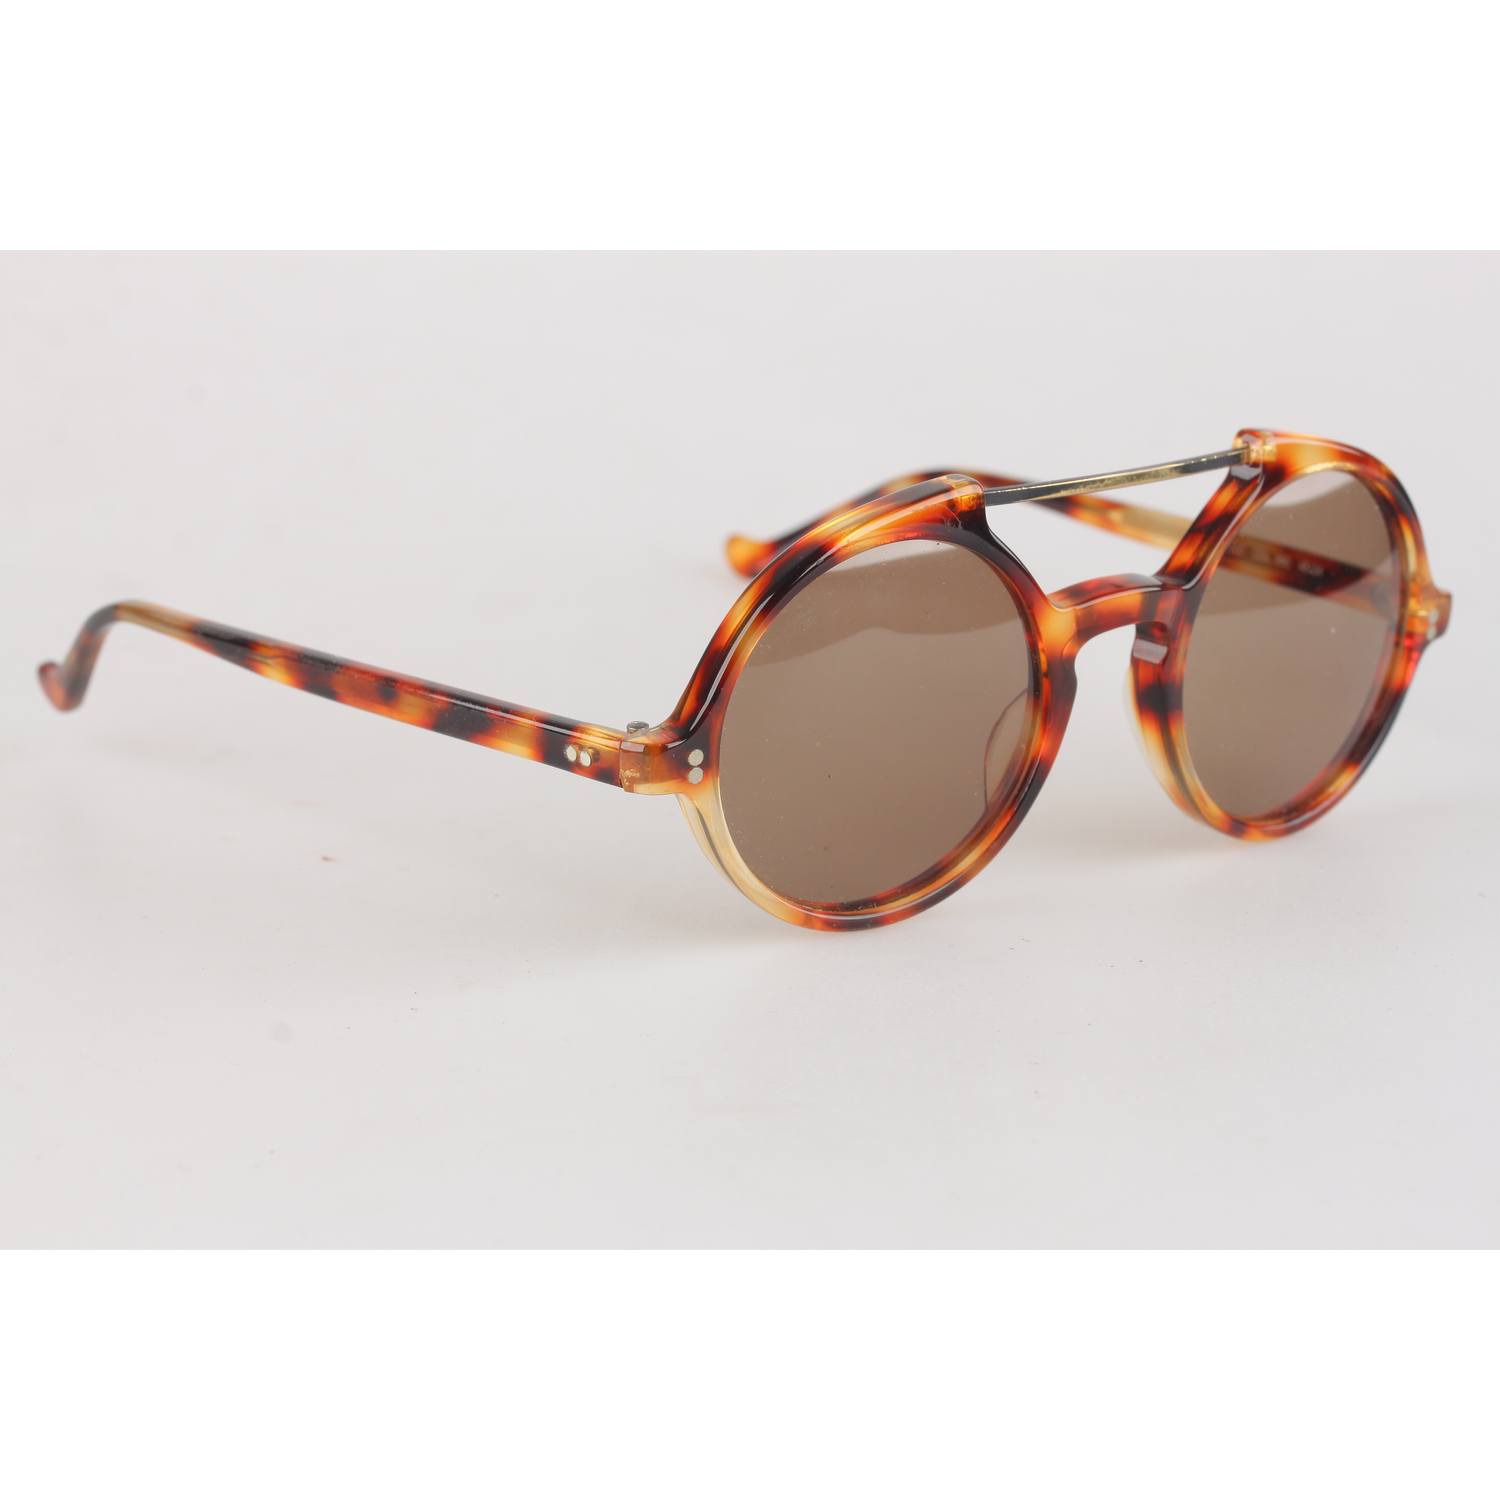 43f81fc27e2 Authentic Gianni Versace Vintage Round Steampunk Sunglasses 45mm New ...